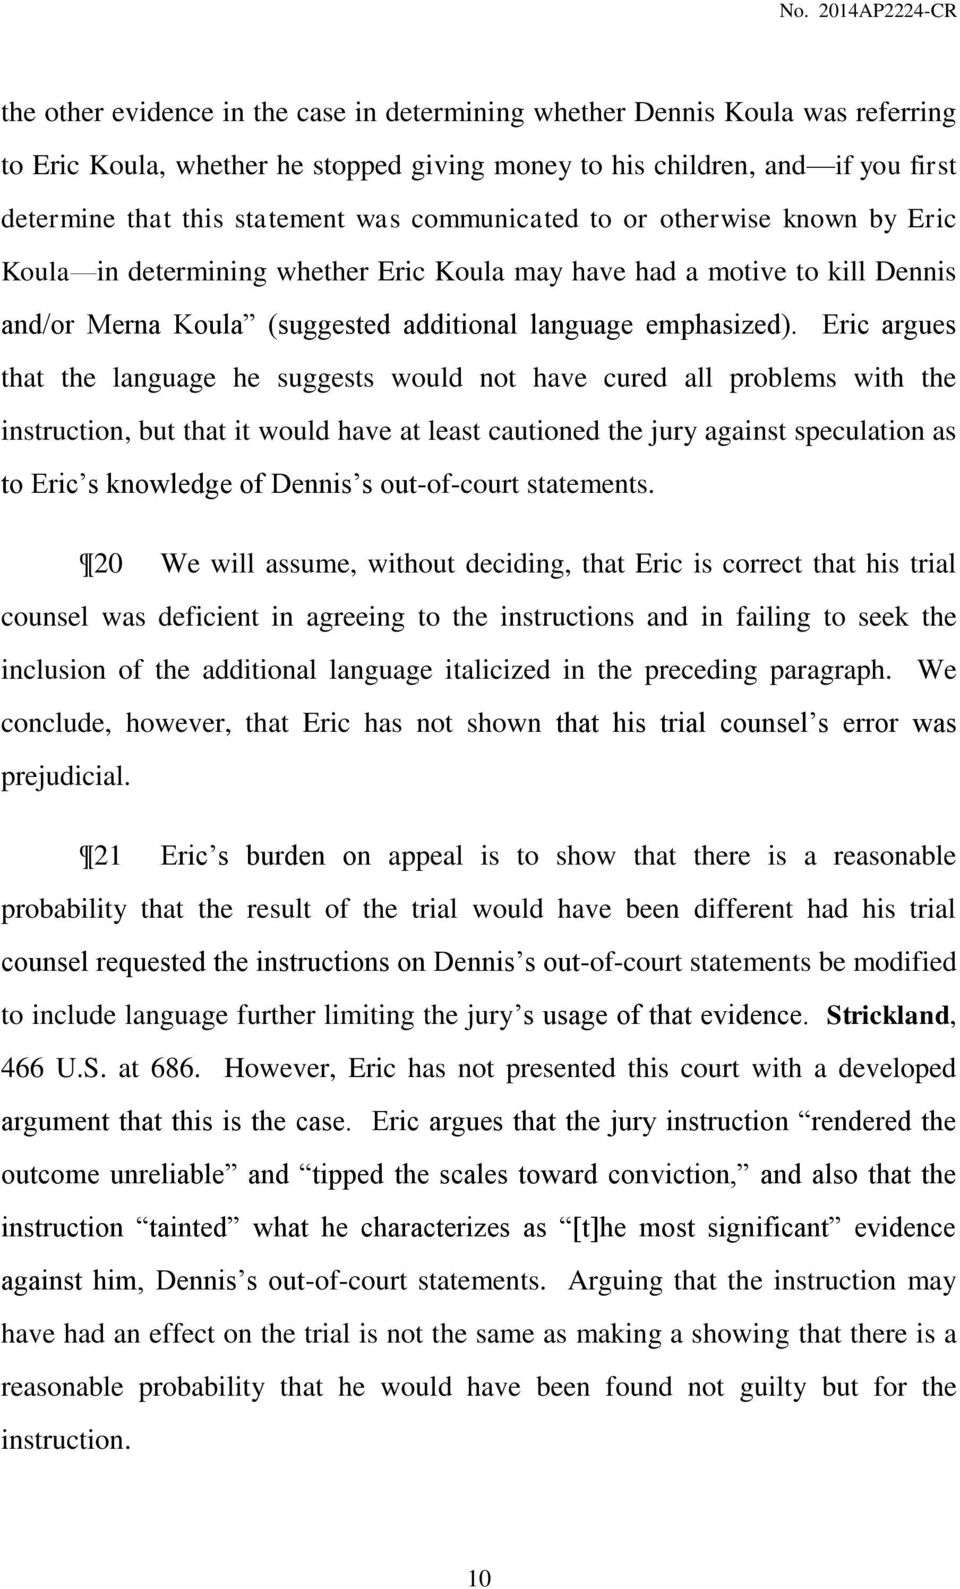 Eric argues that the language he suggests would not have cured all problems with the instruction, but that it would have at least cautioned the jury against speculation as to Eric s knowledge of